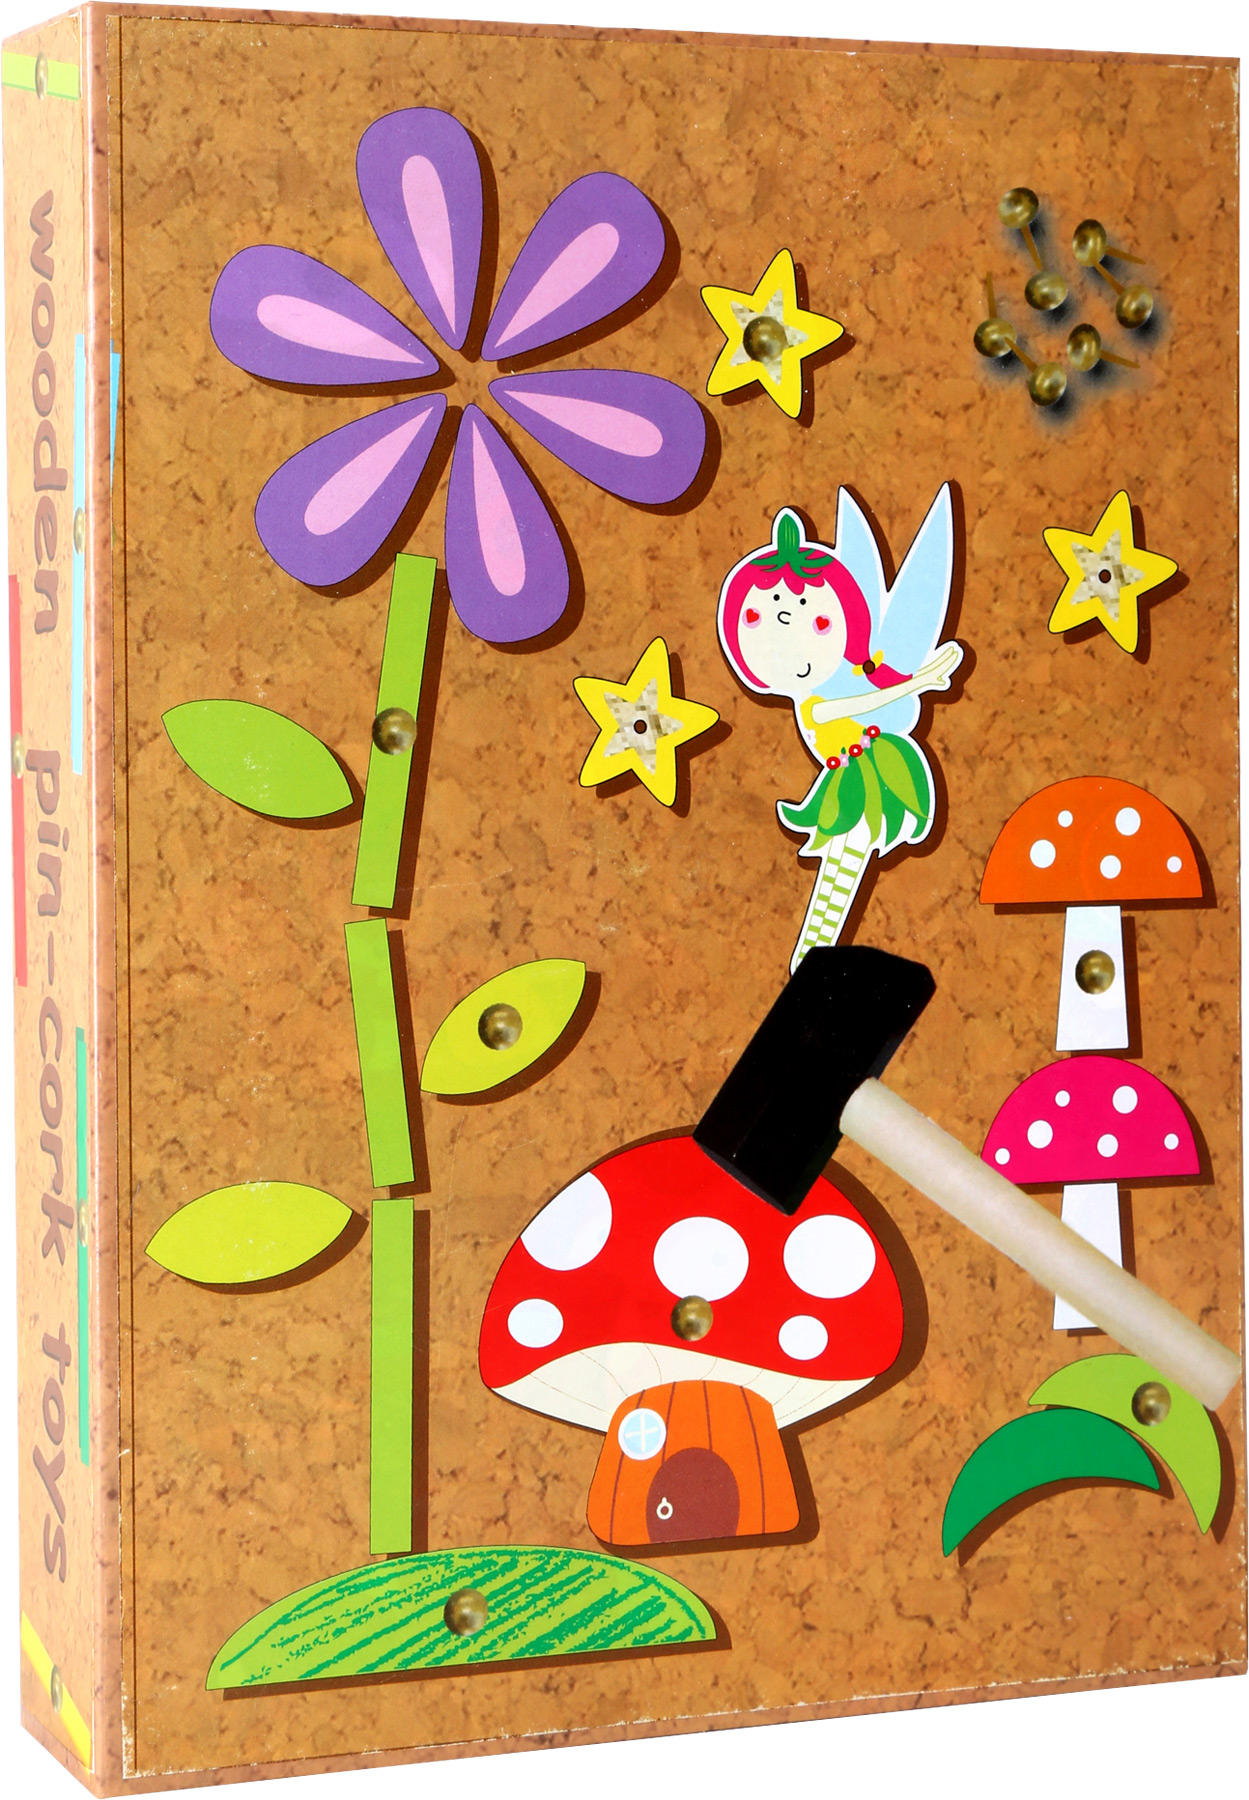 Fairy Hammer Game Handicraft Articles And Construction Sets